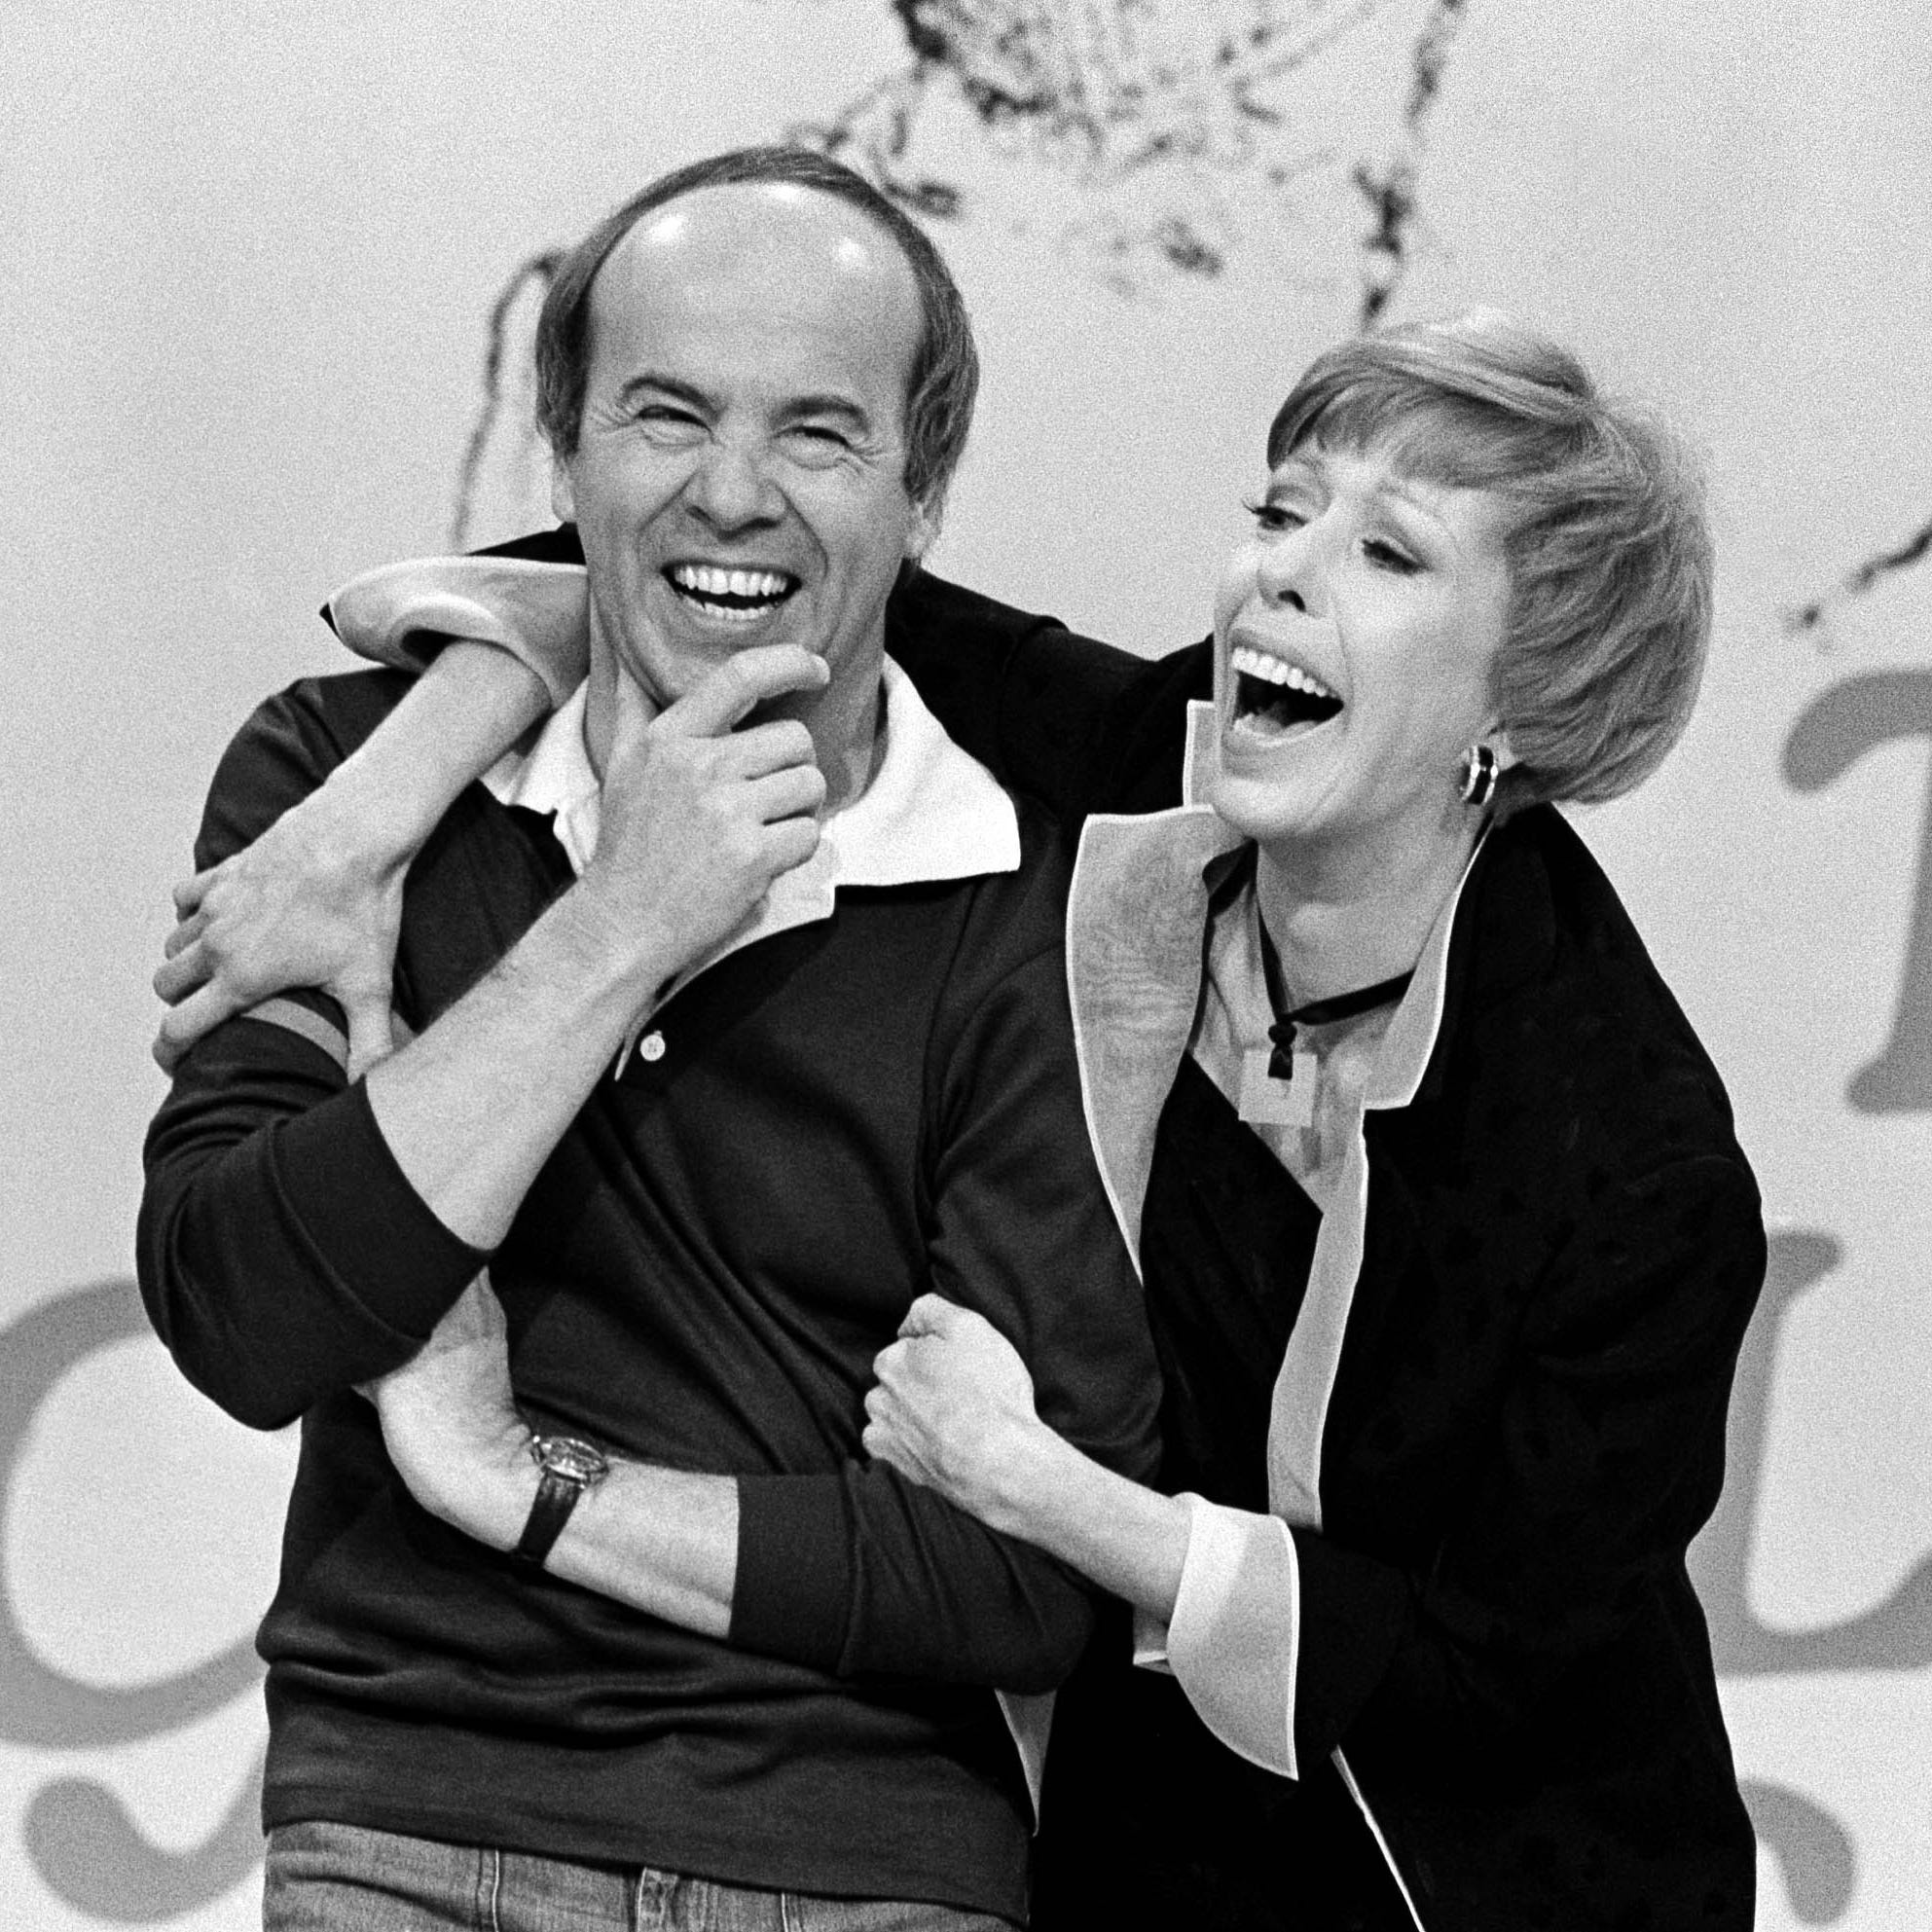 Tim Conway dies at 85; comic actor was lovable sidekick to Carol Burnett